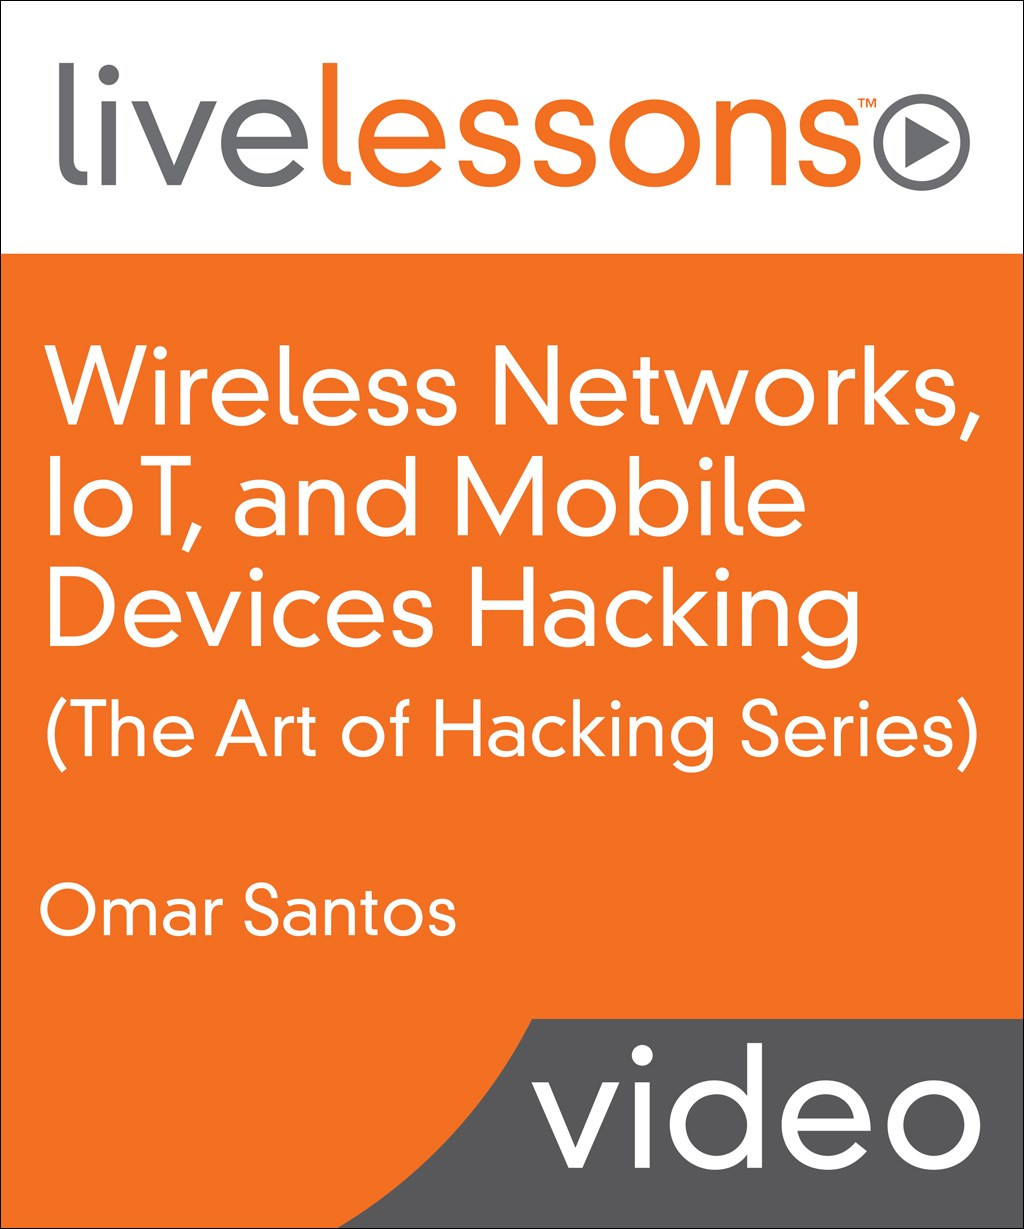 Wireless Networks, IoT, and Mobile Devices Hacking